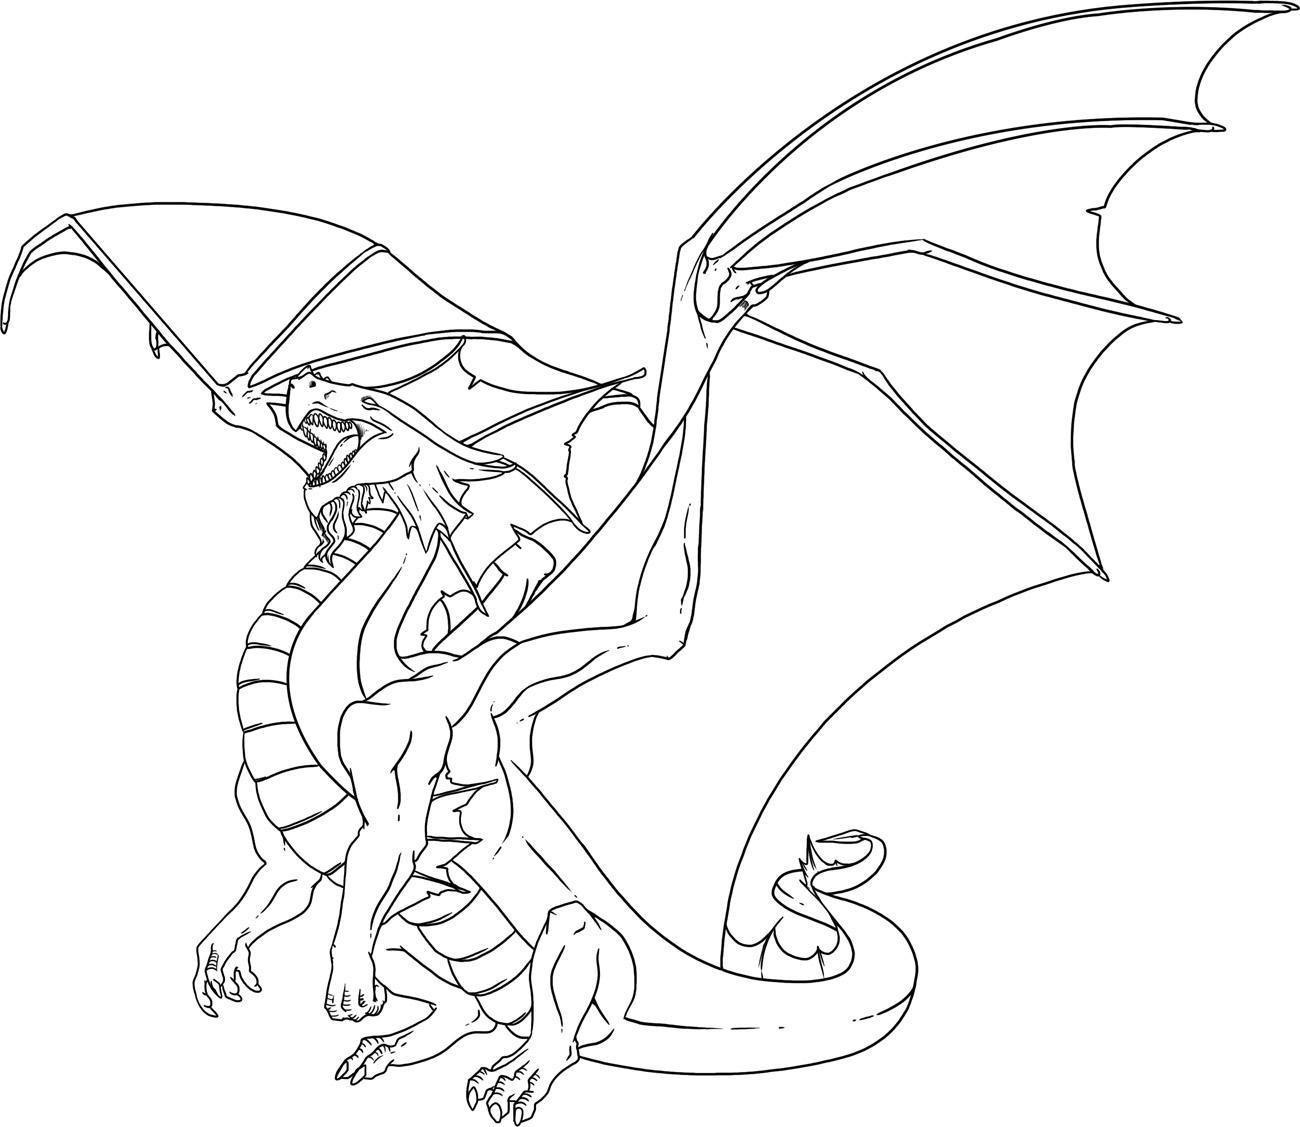 dragon pictures to color and print dragon coloring pages printable only coloring pages dragon color and print to pictures